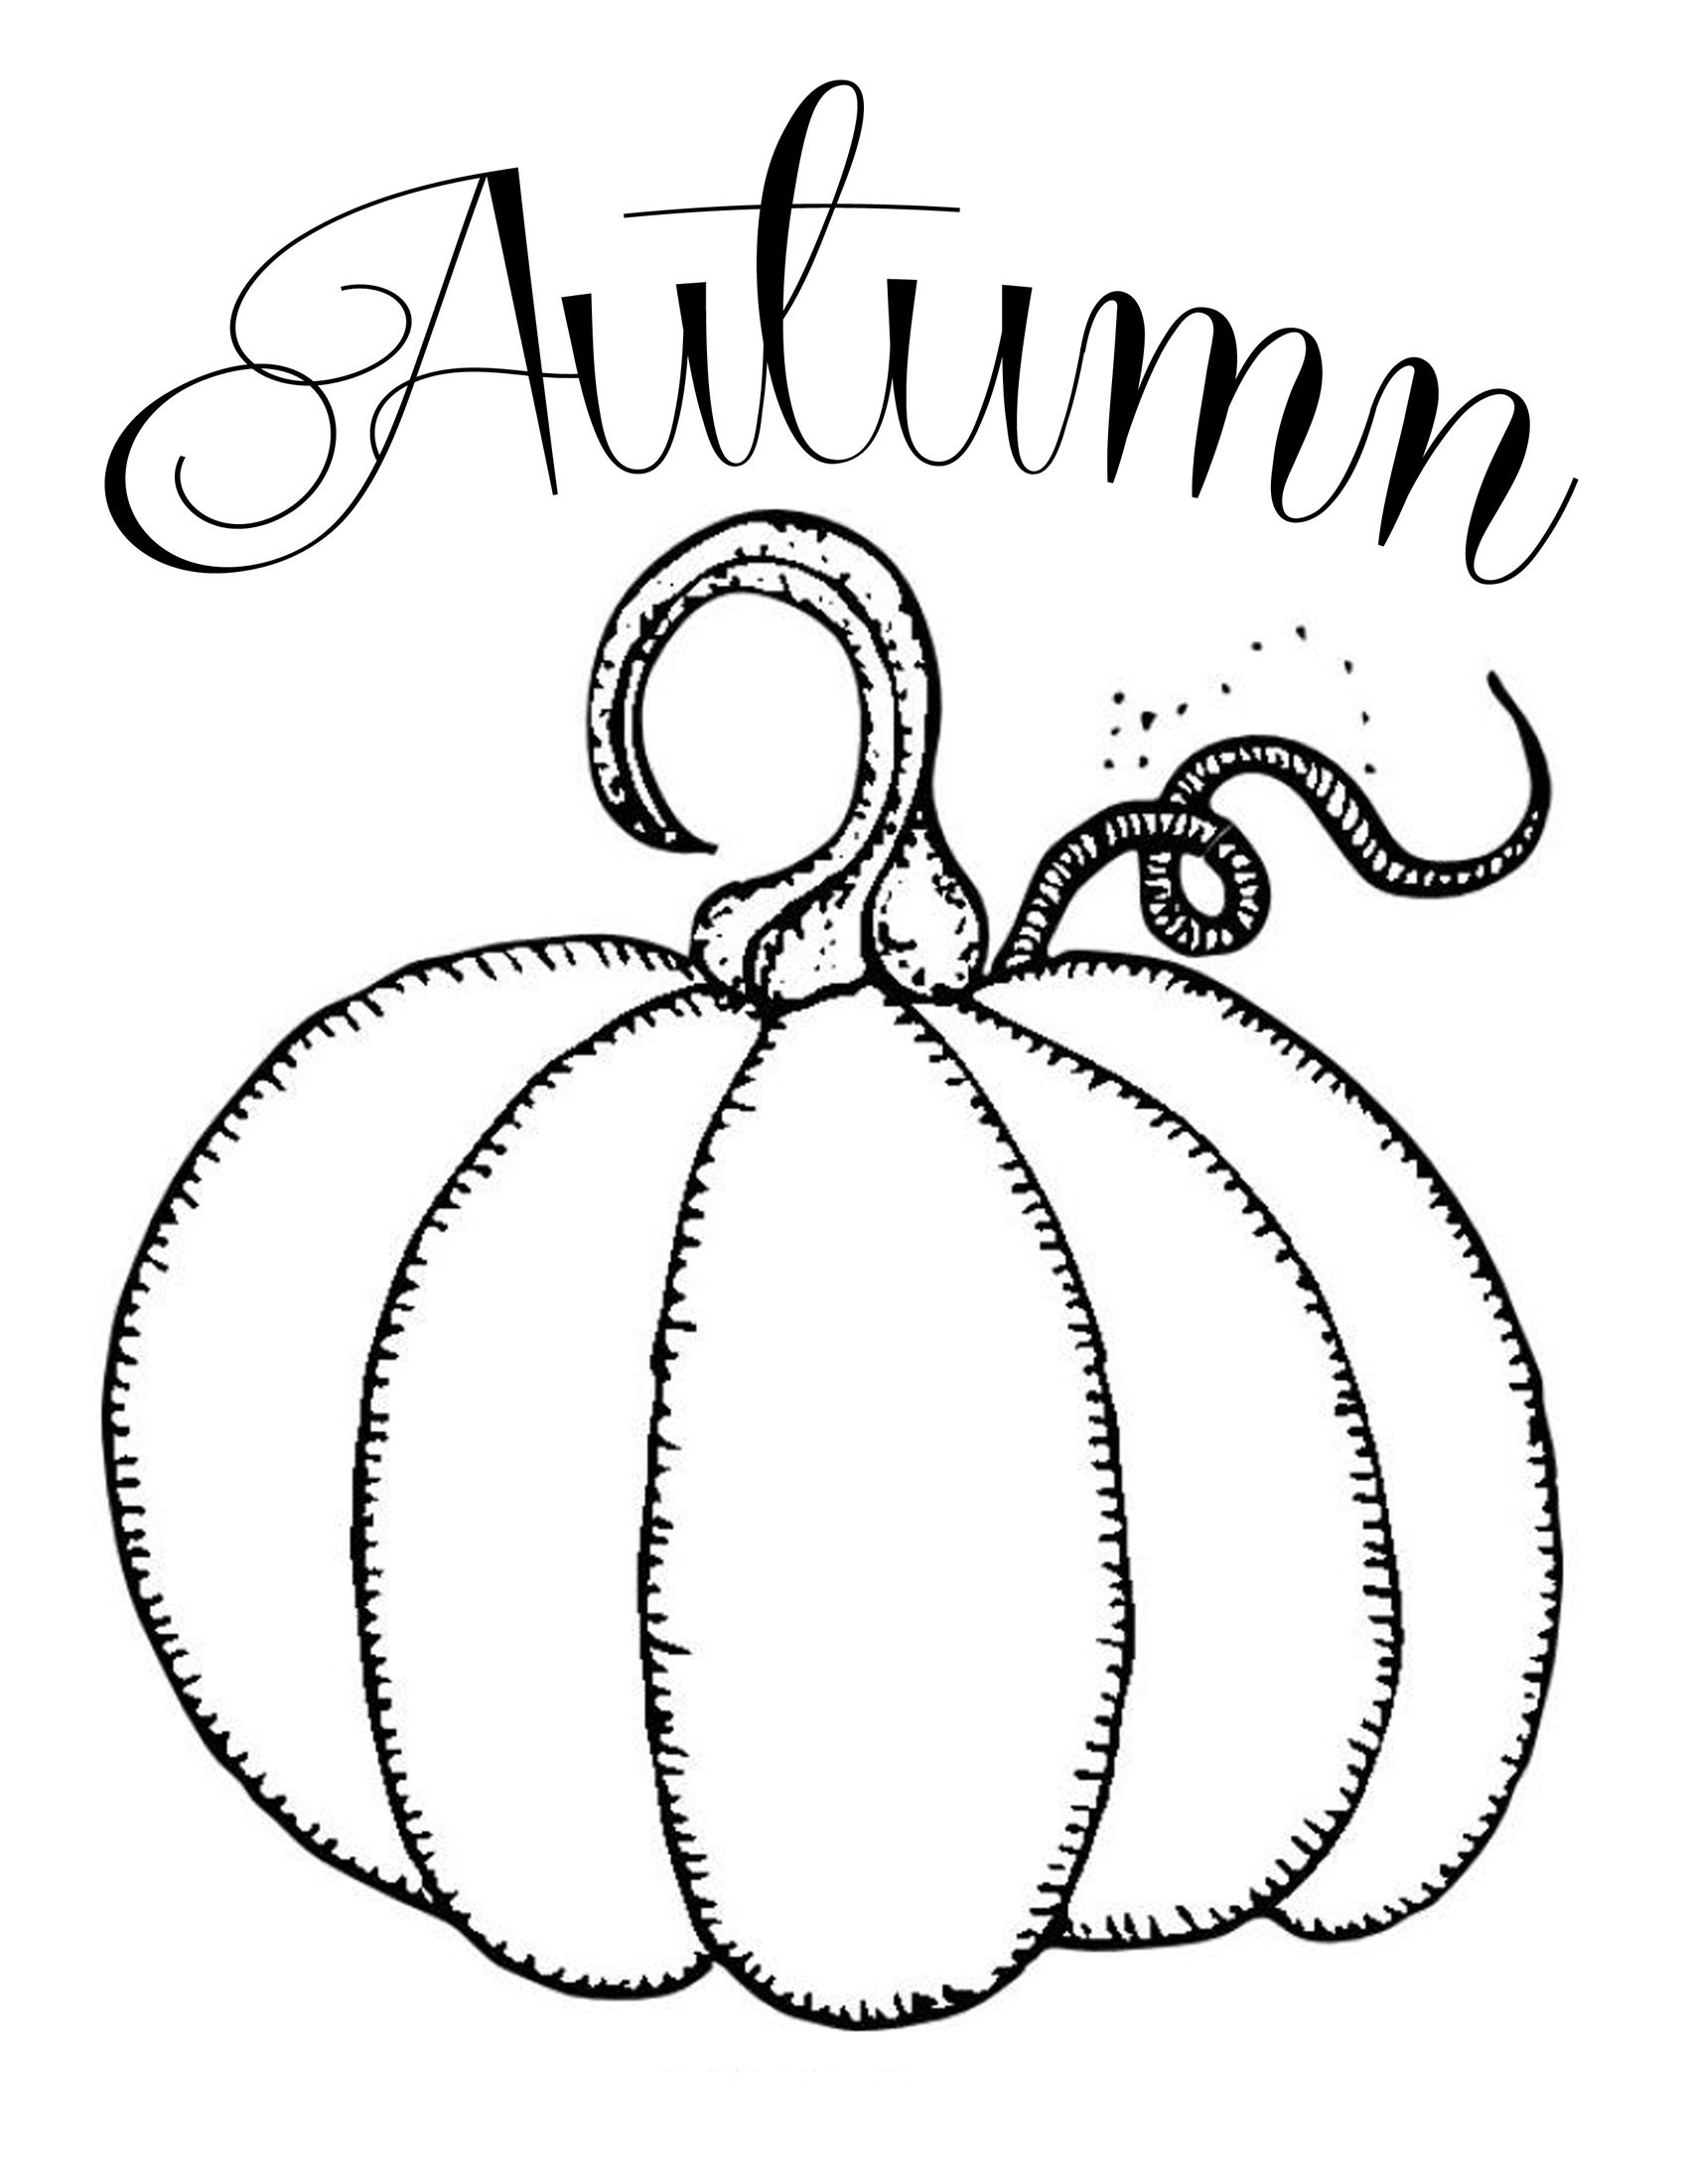 Free Printables ~ Chalkboard Autumn Pumpkin | Fonts And Printables - Free Pumpkin Printables